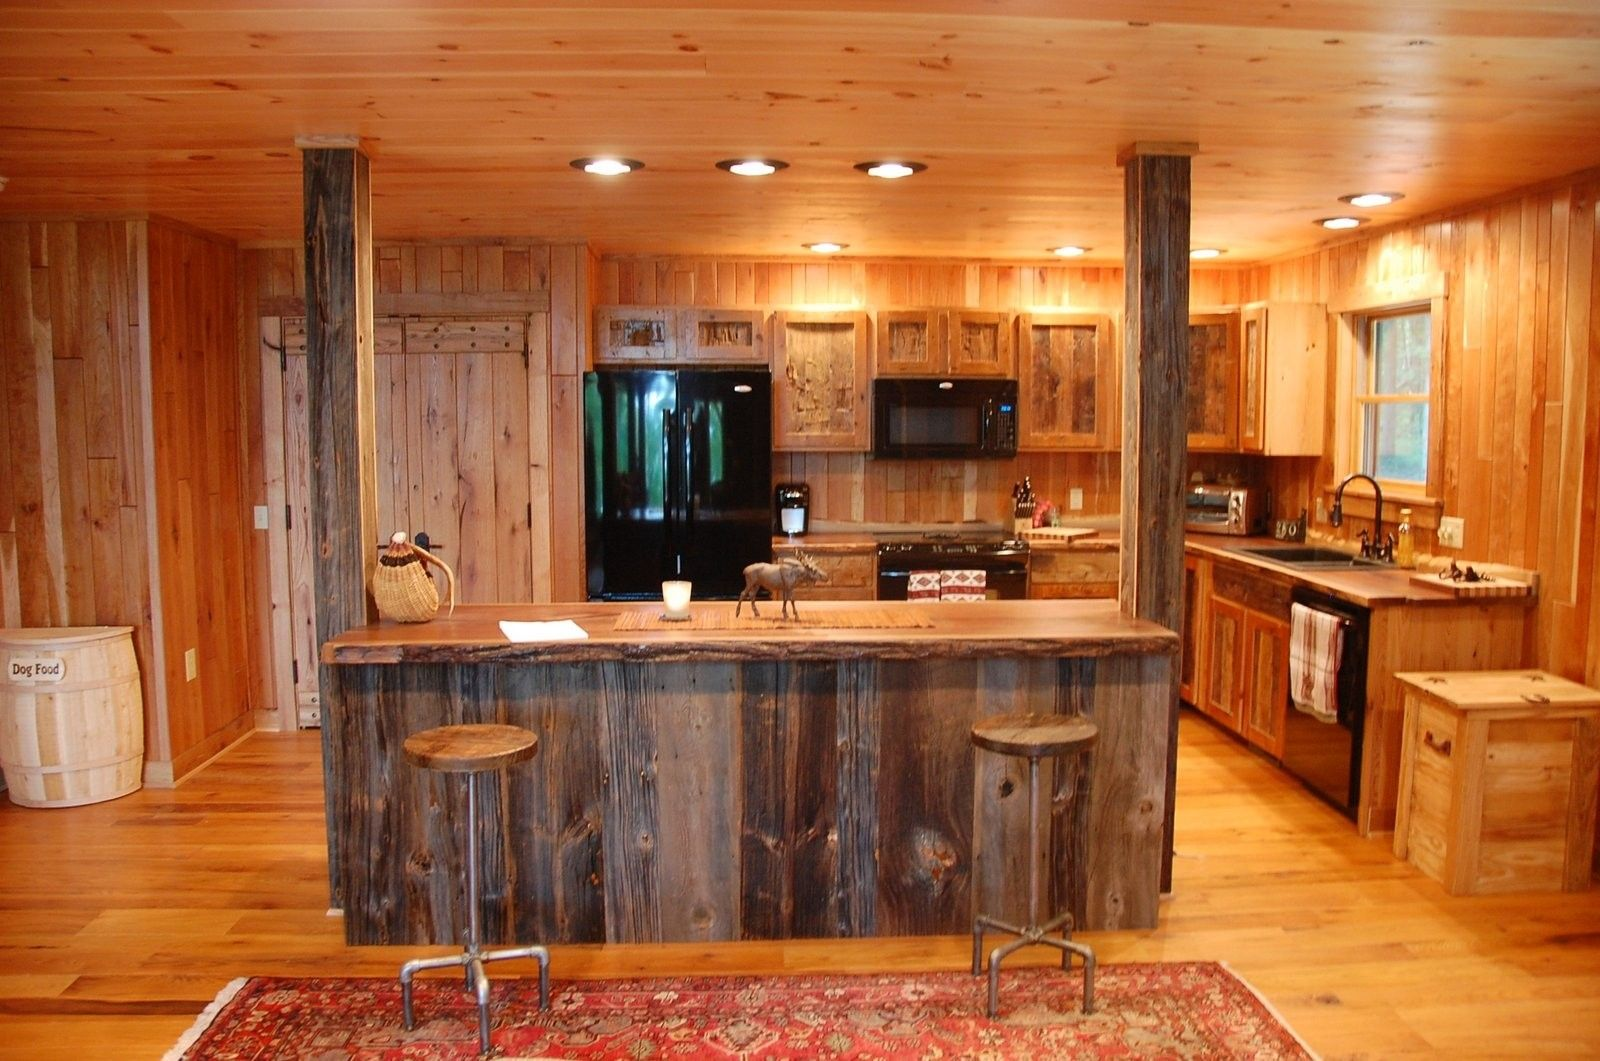 Rustic Wood Kitchen custom made reclaimed wood rustic kitchen cabinetscorey morgan